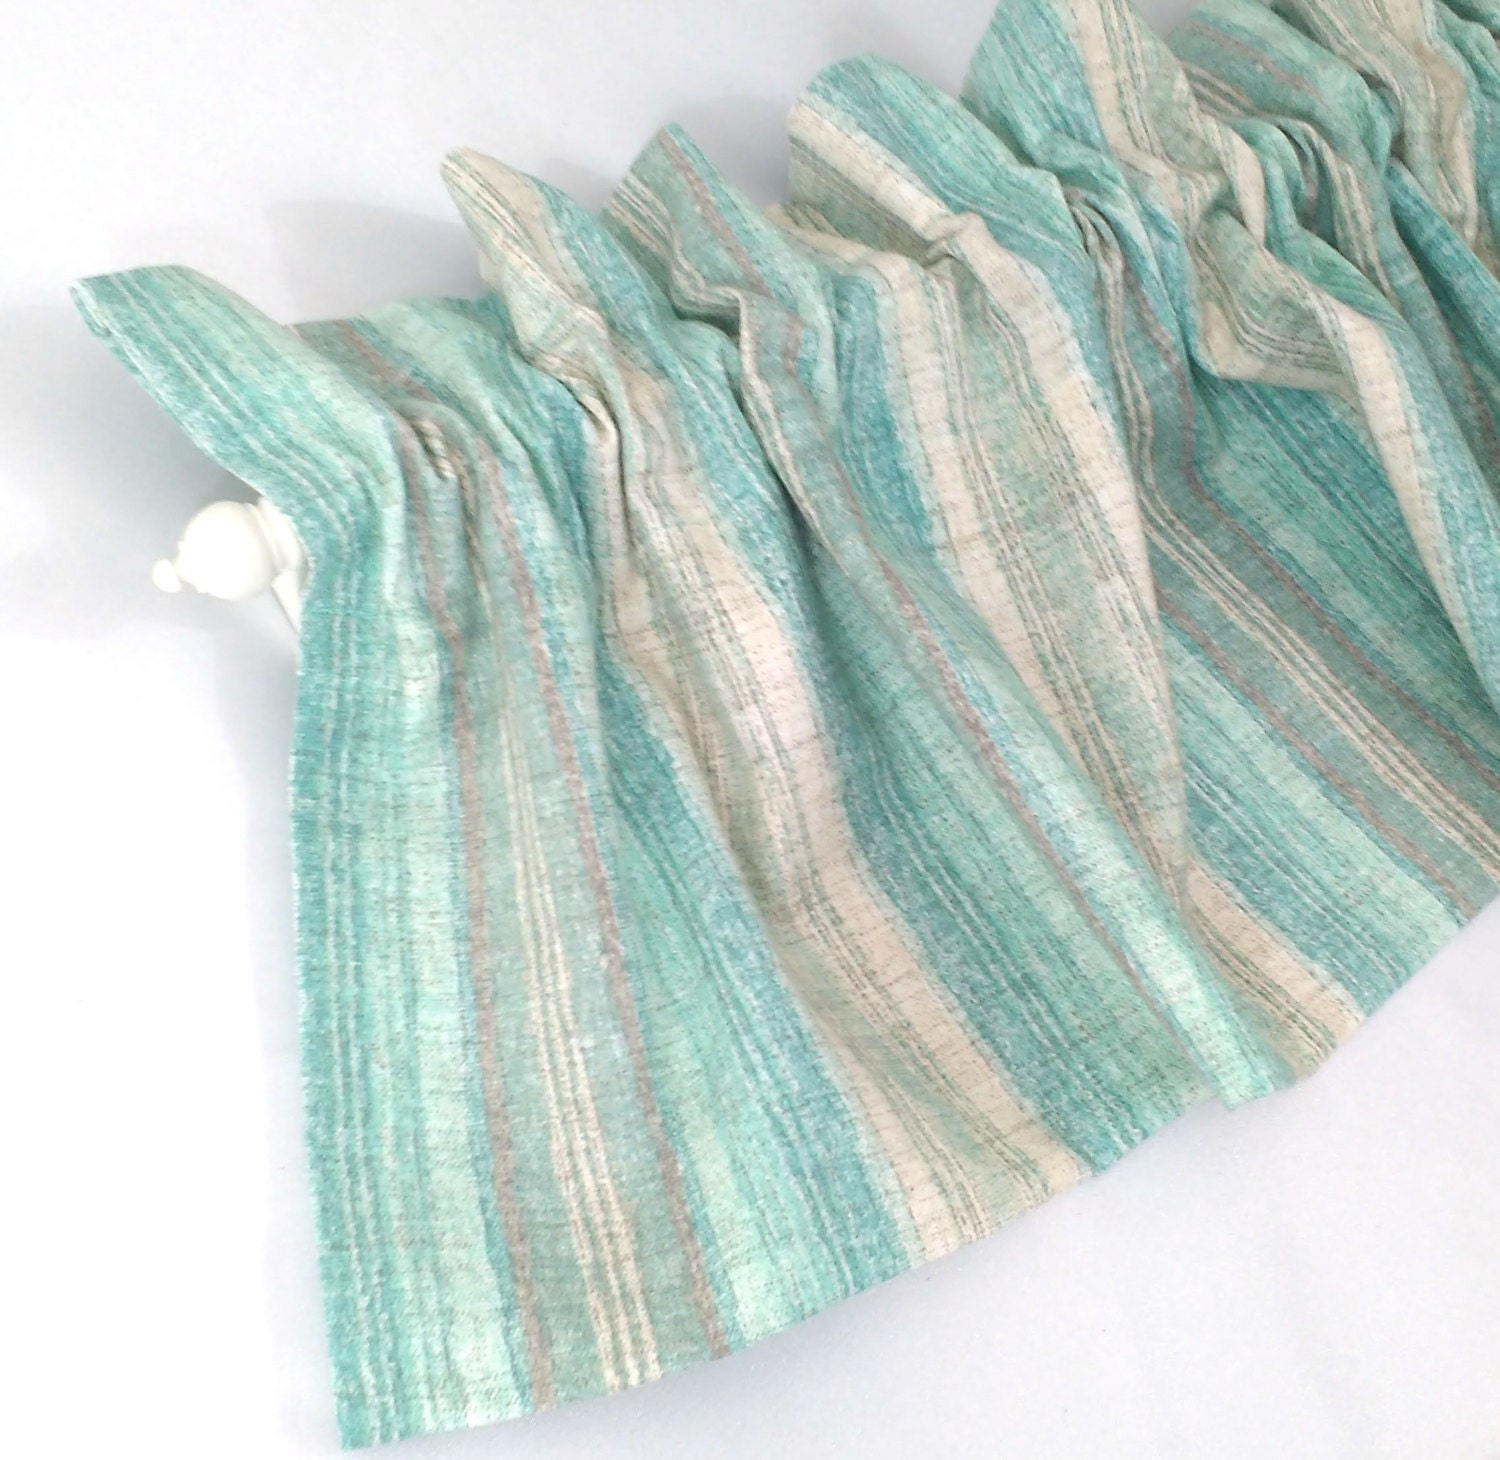 Blue Green Kitchen Curtains: AQUA Valance Curtain Blue Green And Tan Cream Stripes 43